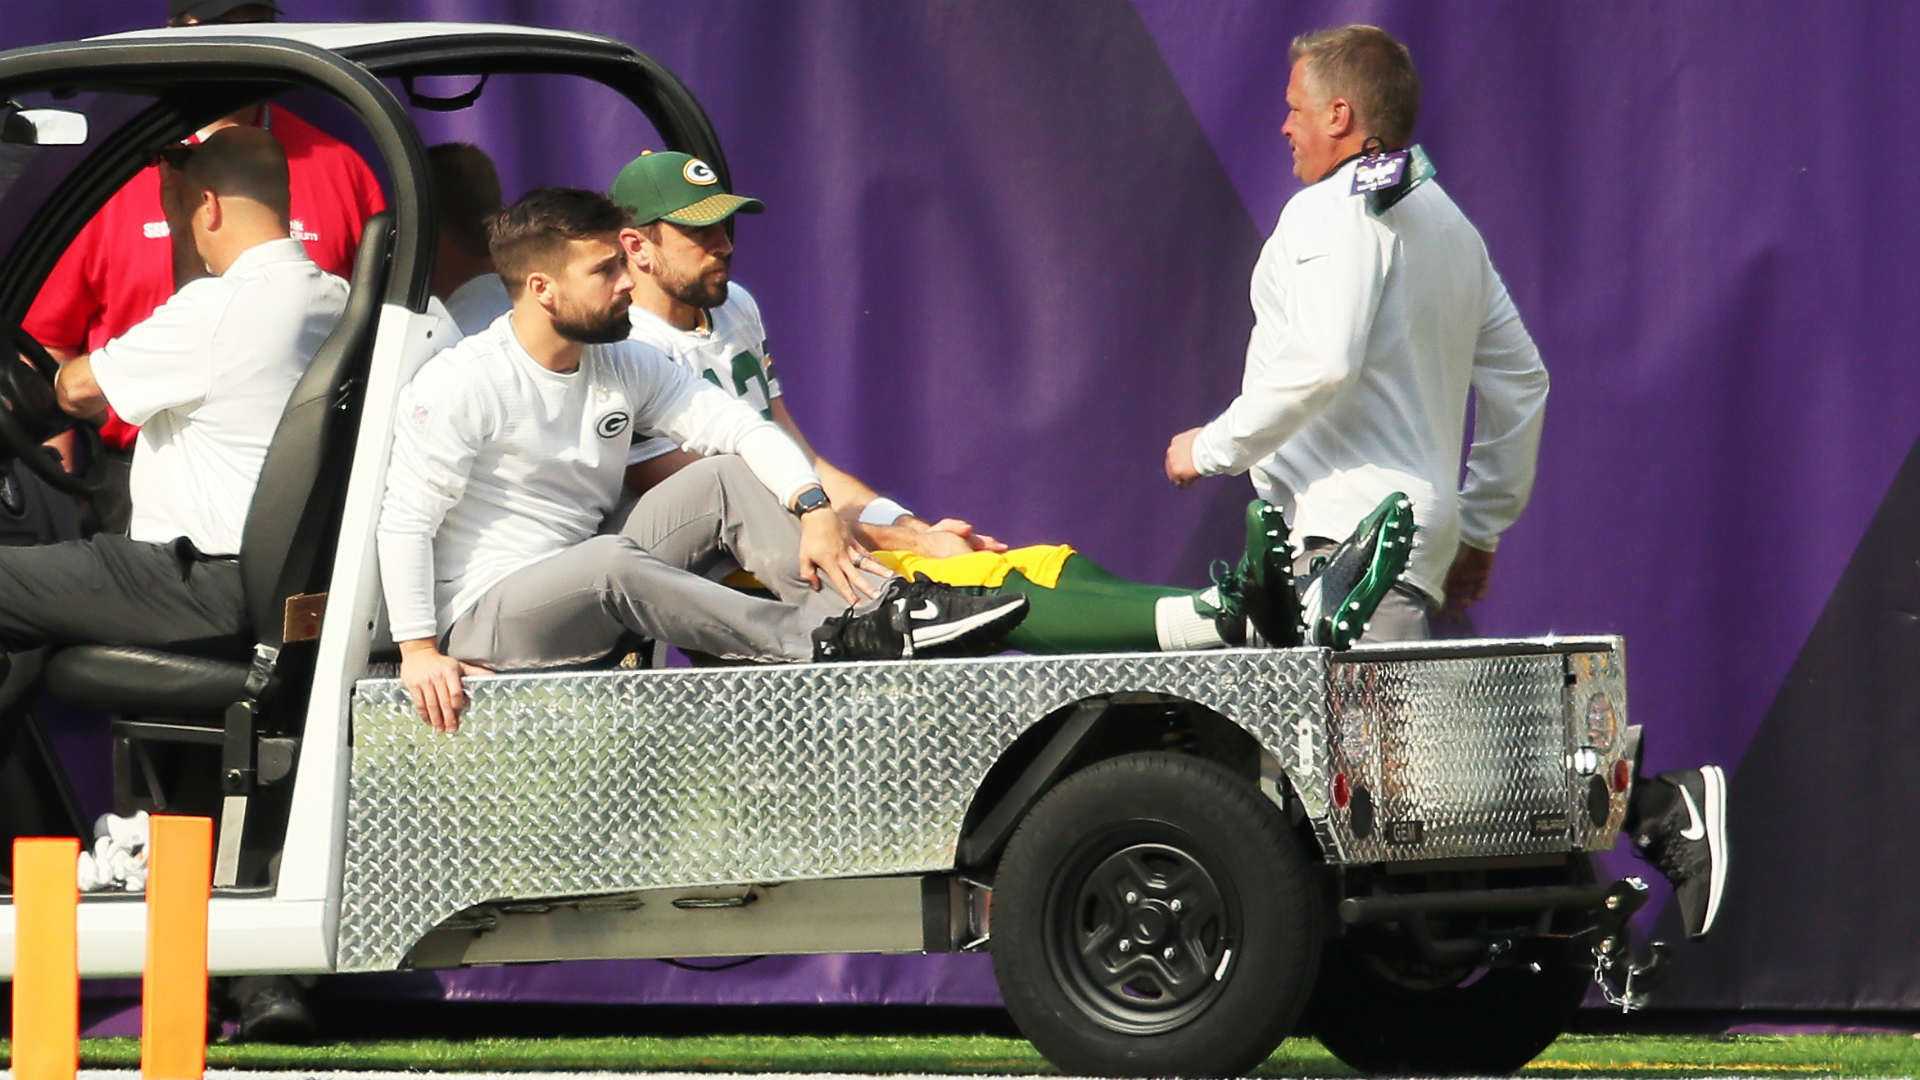 Aaron Rodgers after surgery: 'Comeback starts now'